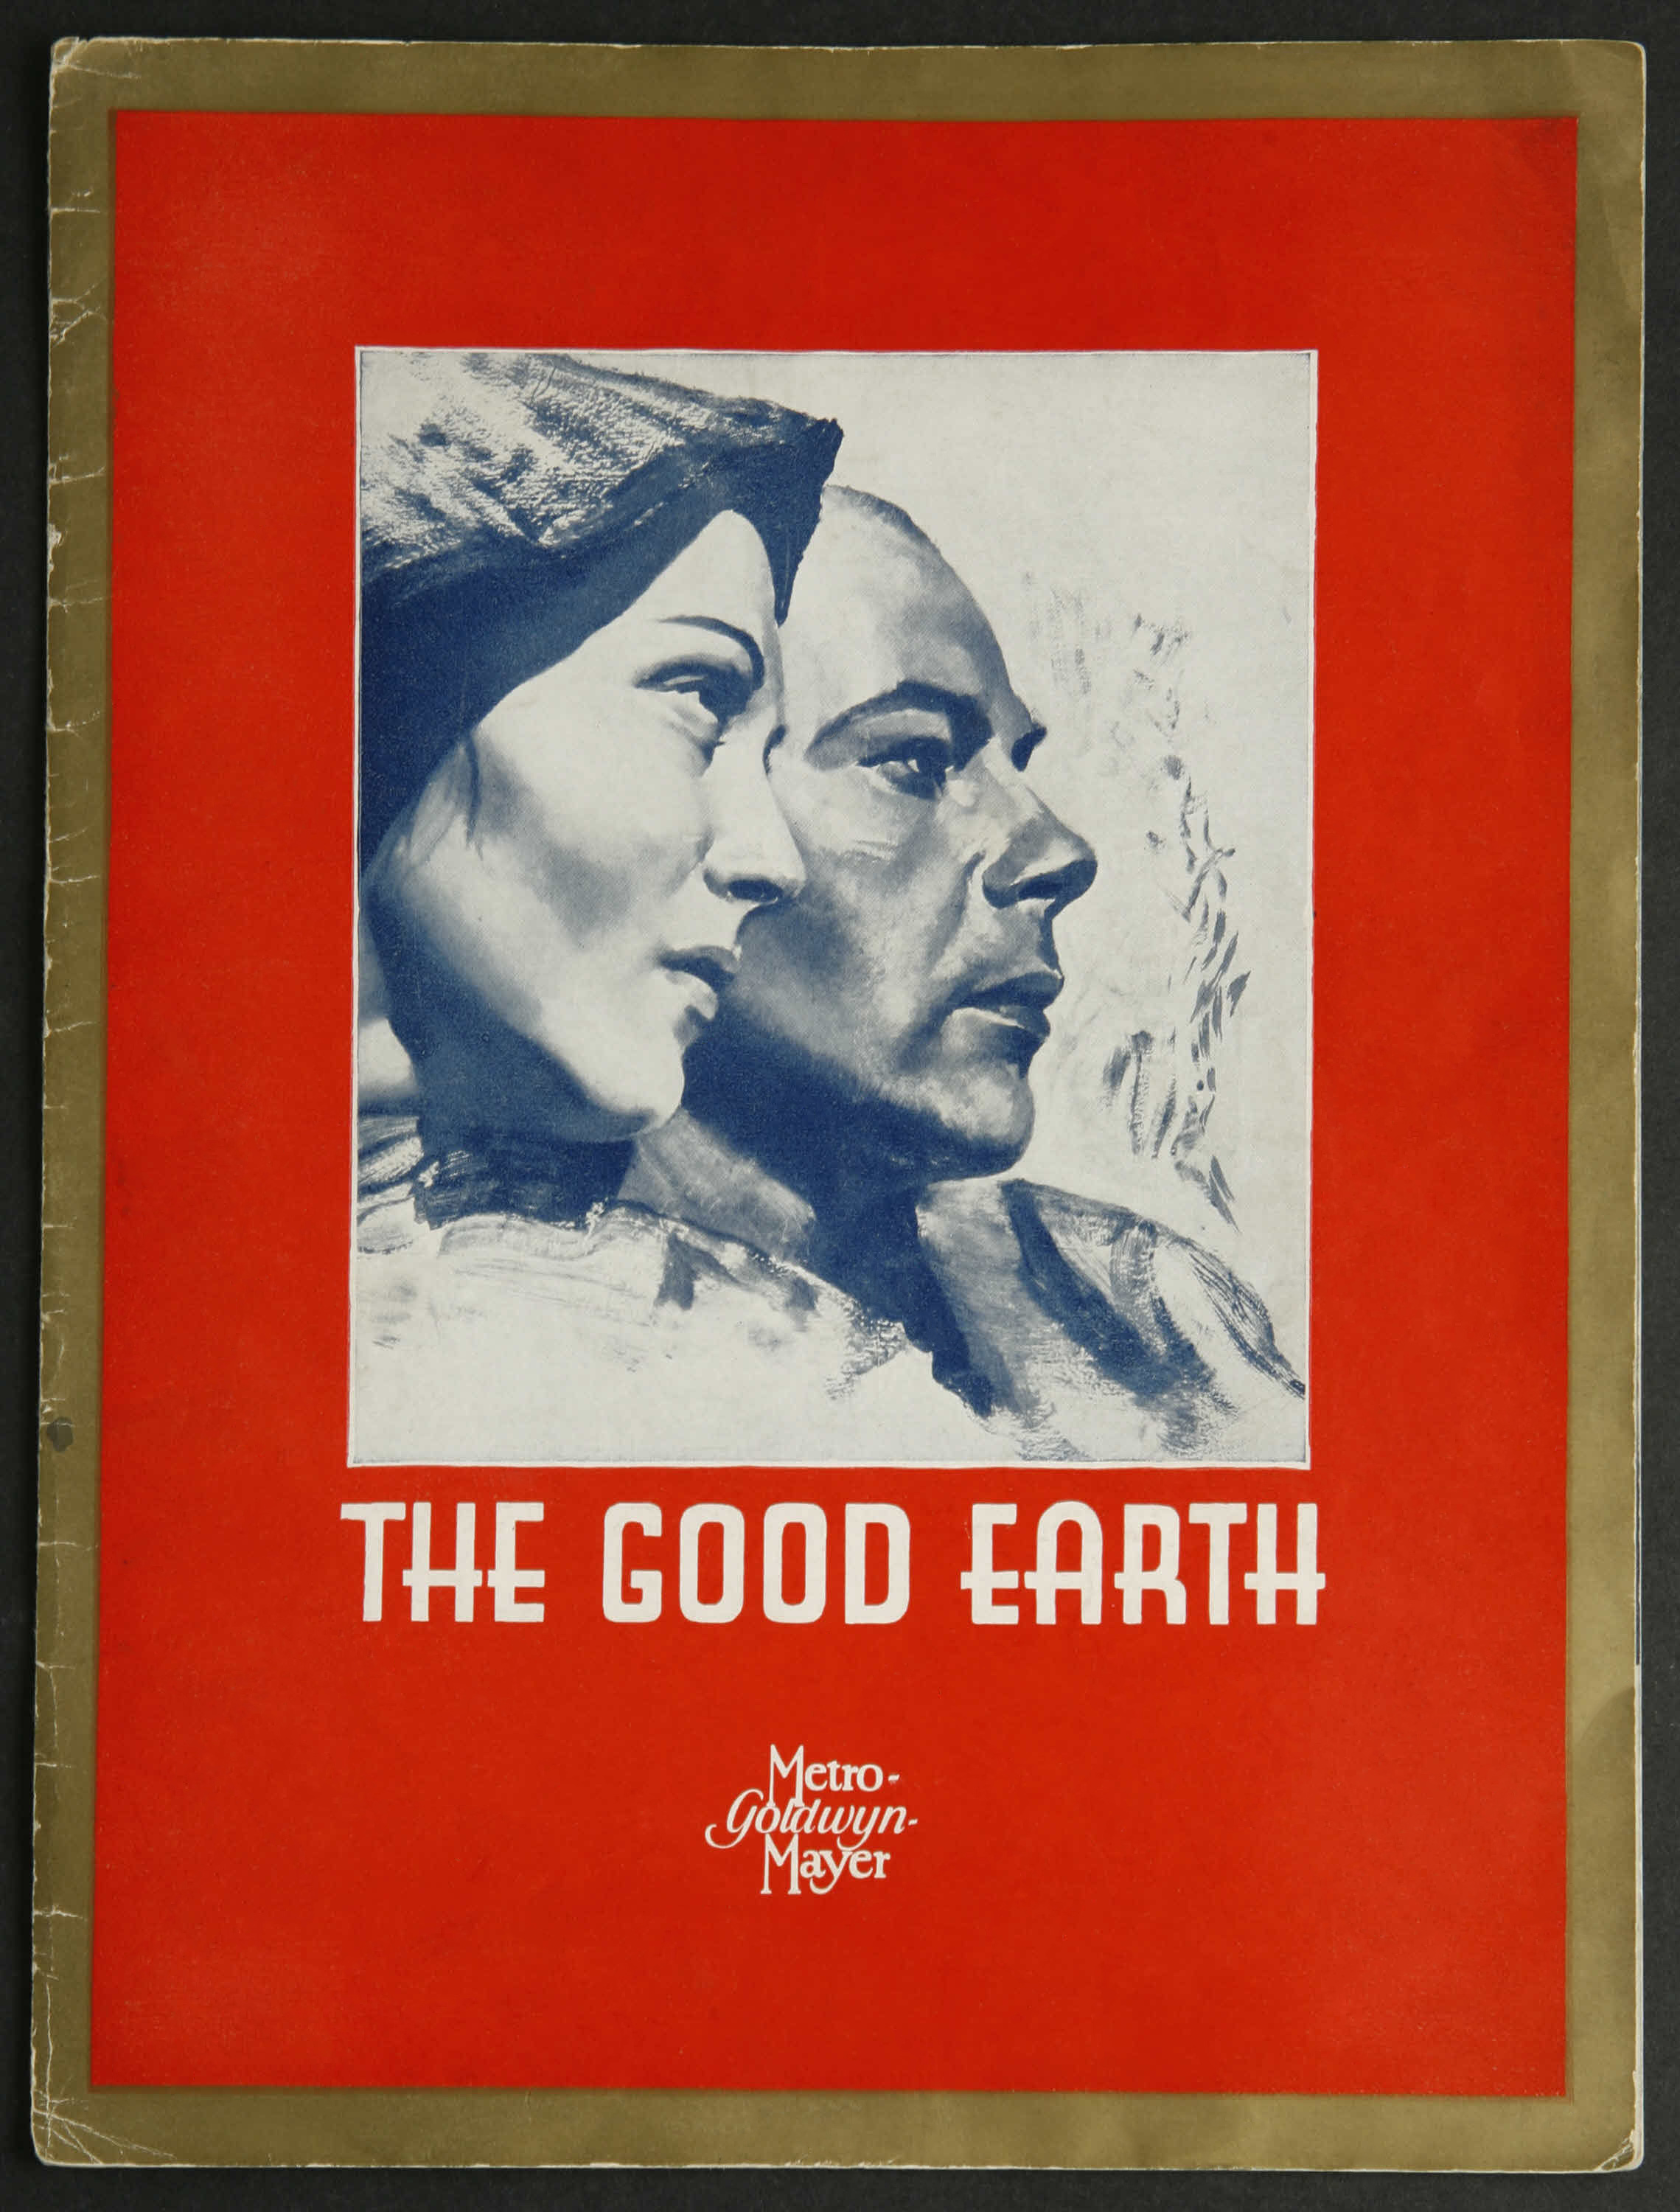 an analysis of the good earth in 1937 The book of questions, iii - tell me, is the rose naked (1937), published from the residence on earth (1962) the heights of macchu picchu.